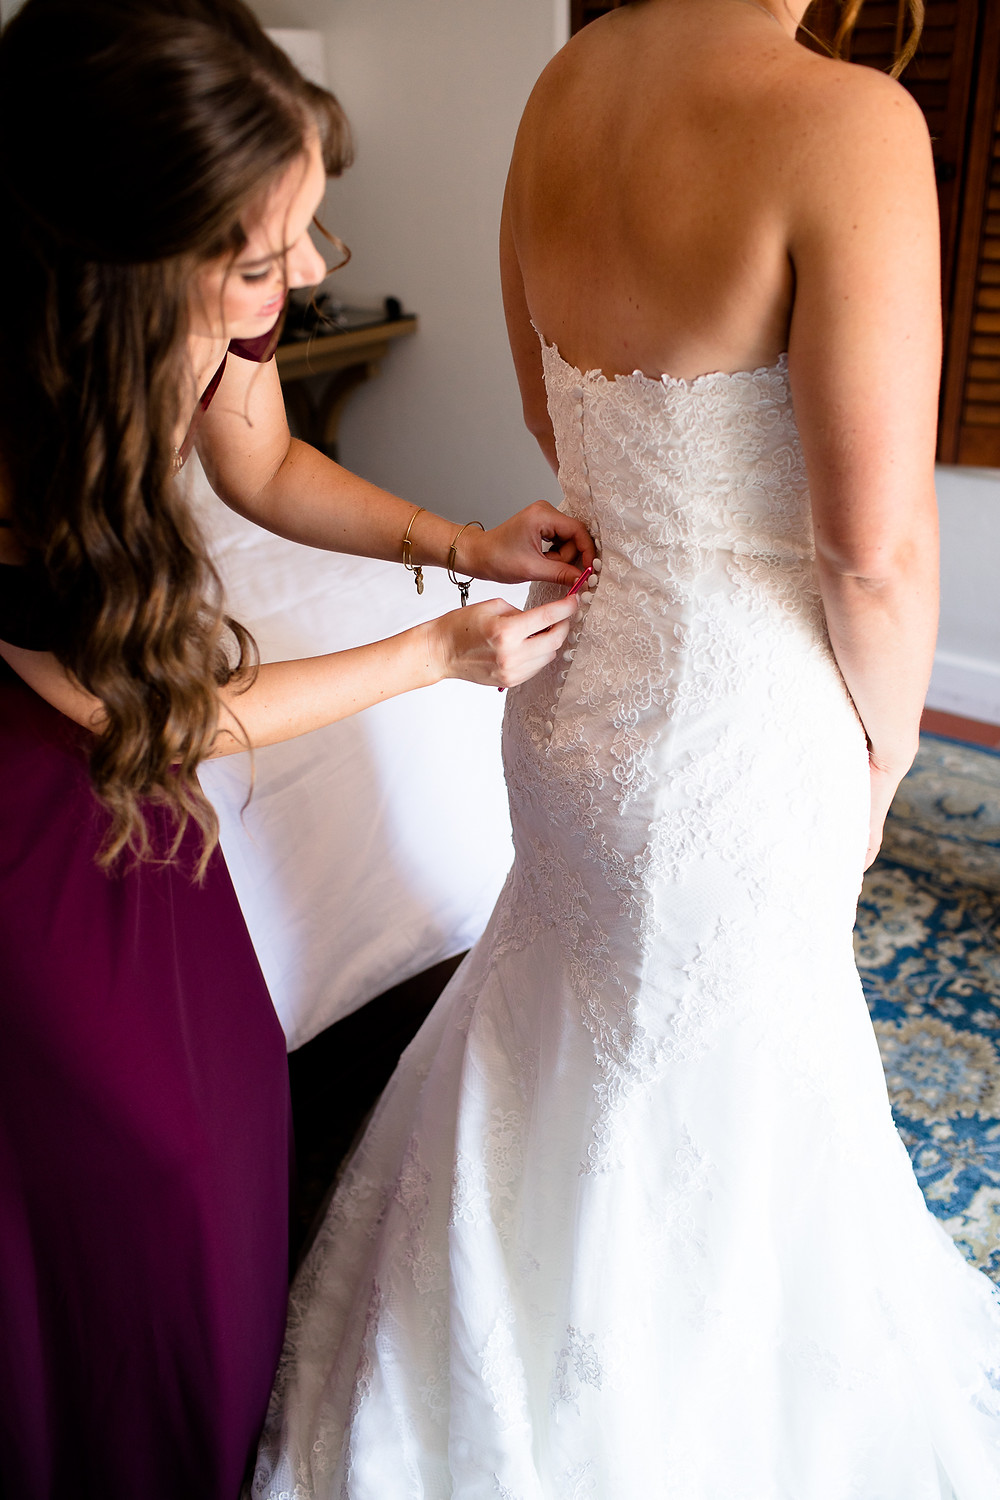 maid of honor buttoning up wedding dress